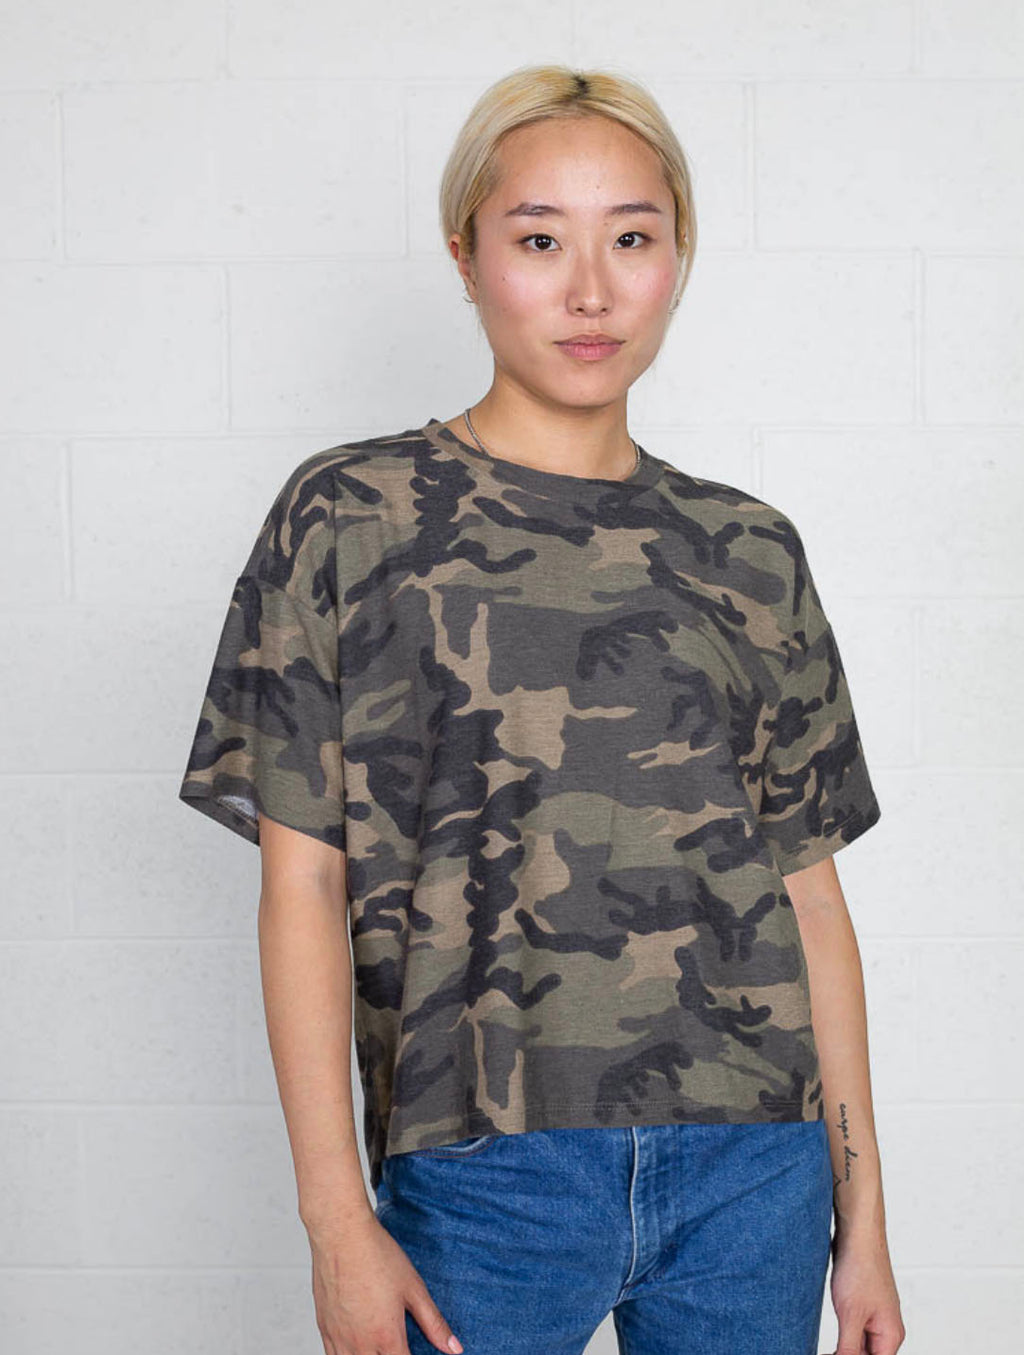 No Less Than Basic Tee in Camo